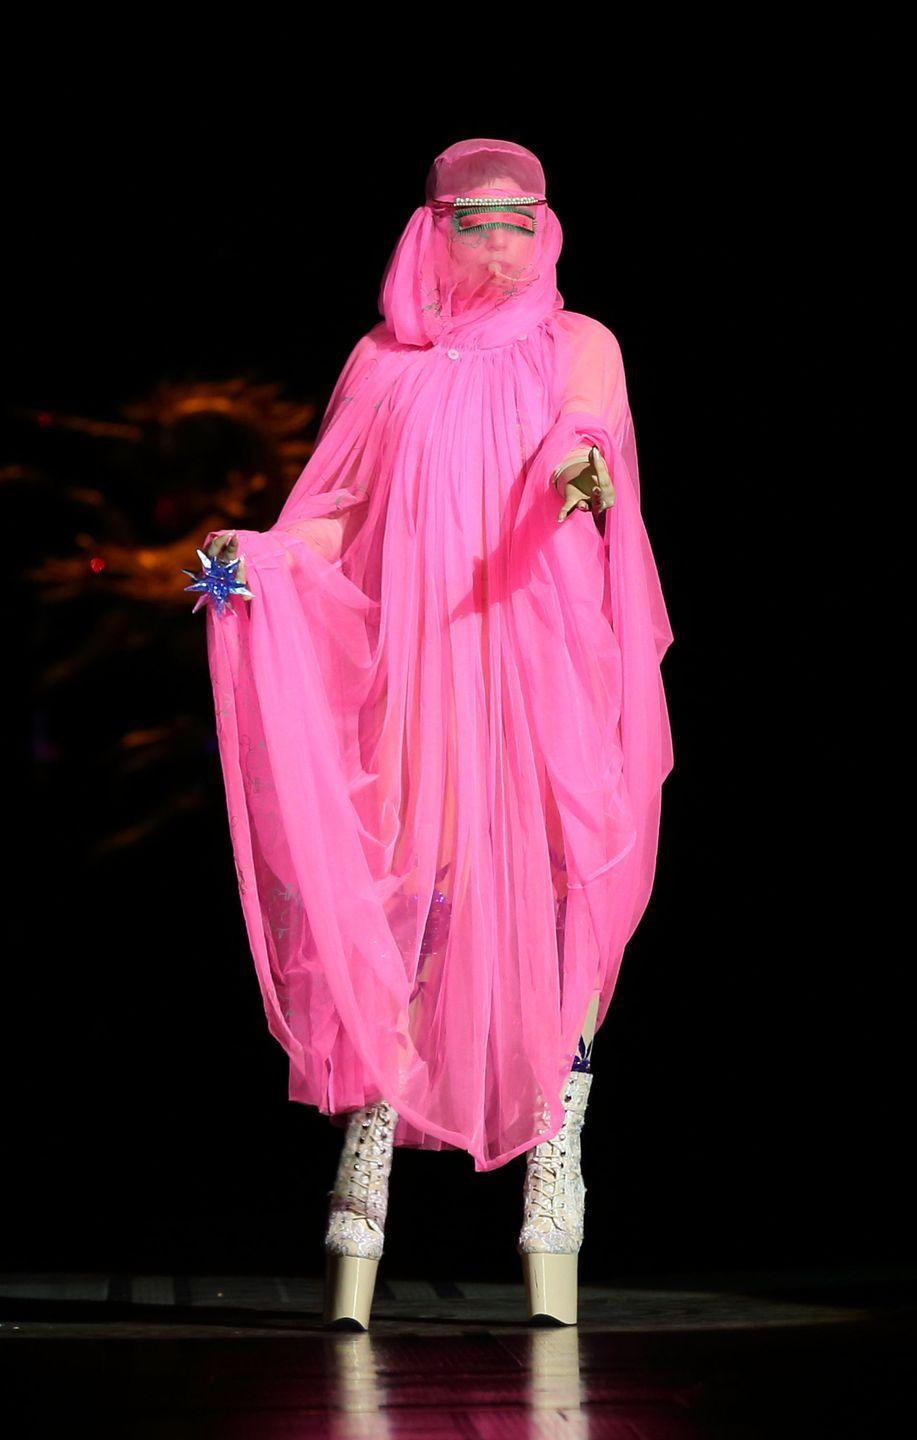 """<p>There was some controversy around this hot pink burqa-like dress that Lady Gaga wore at a Philip Treacy fashion show in 2012. An article published in <em>The Atlantic </em>accused Lady Gaga of """"fetishiz[ing] the women of another culture in order to sell records."""" </p>"""